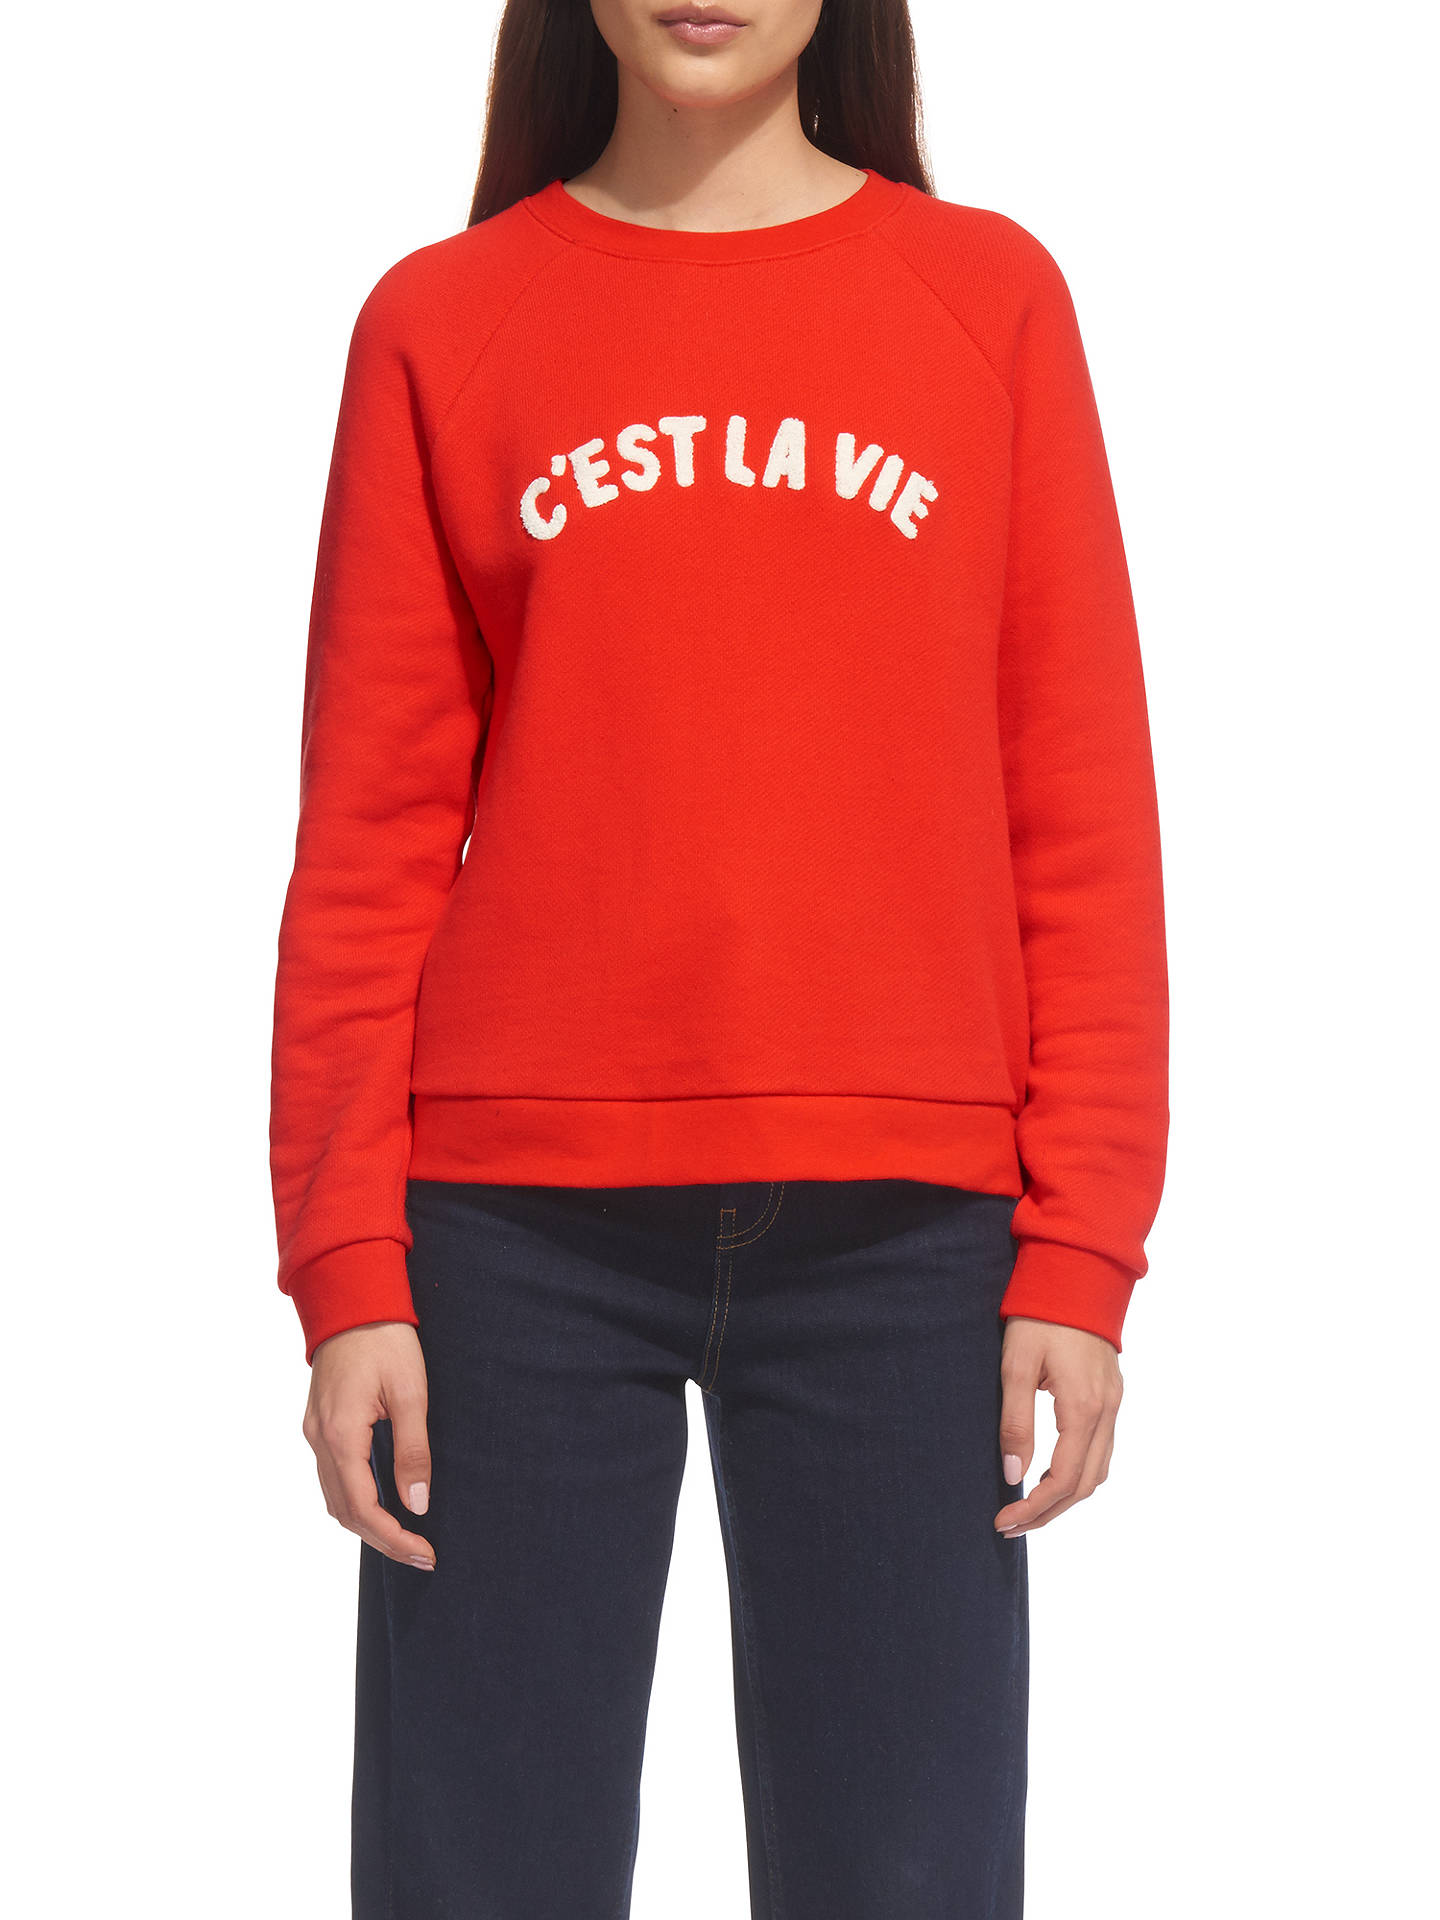 Whistles Cest La Vie Sweater Red At John Lewis Partners